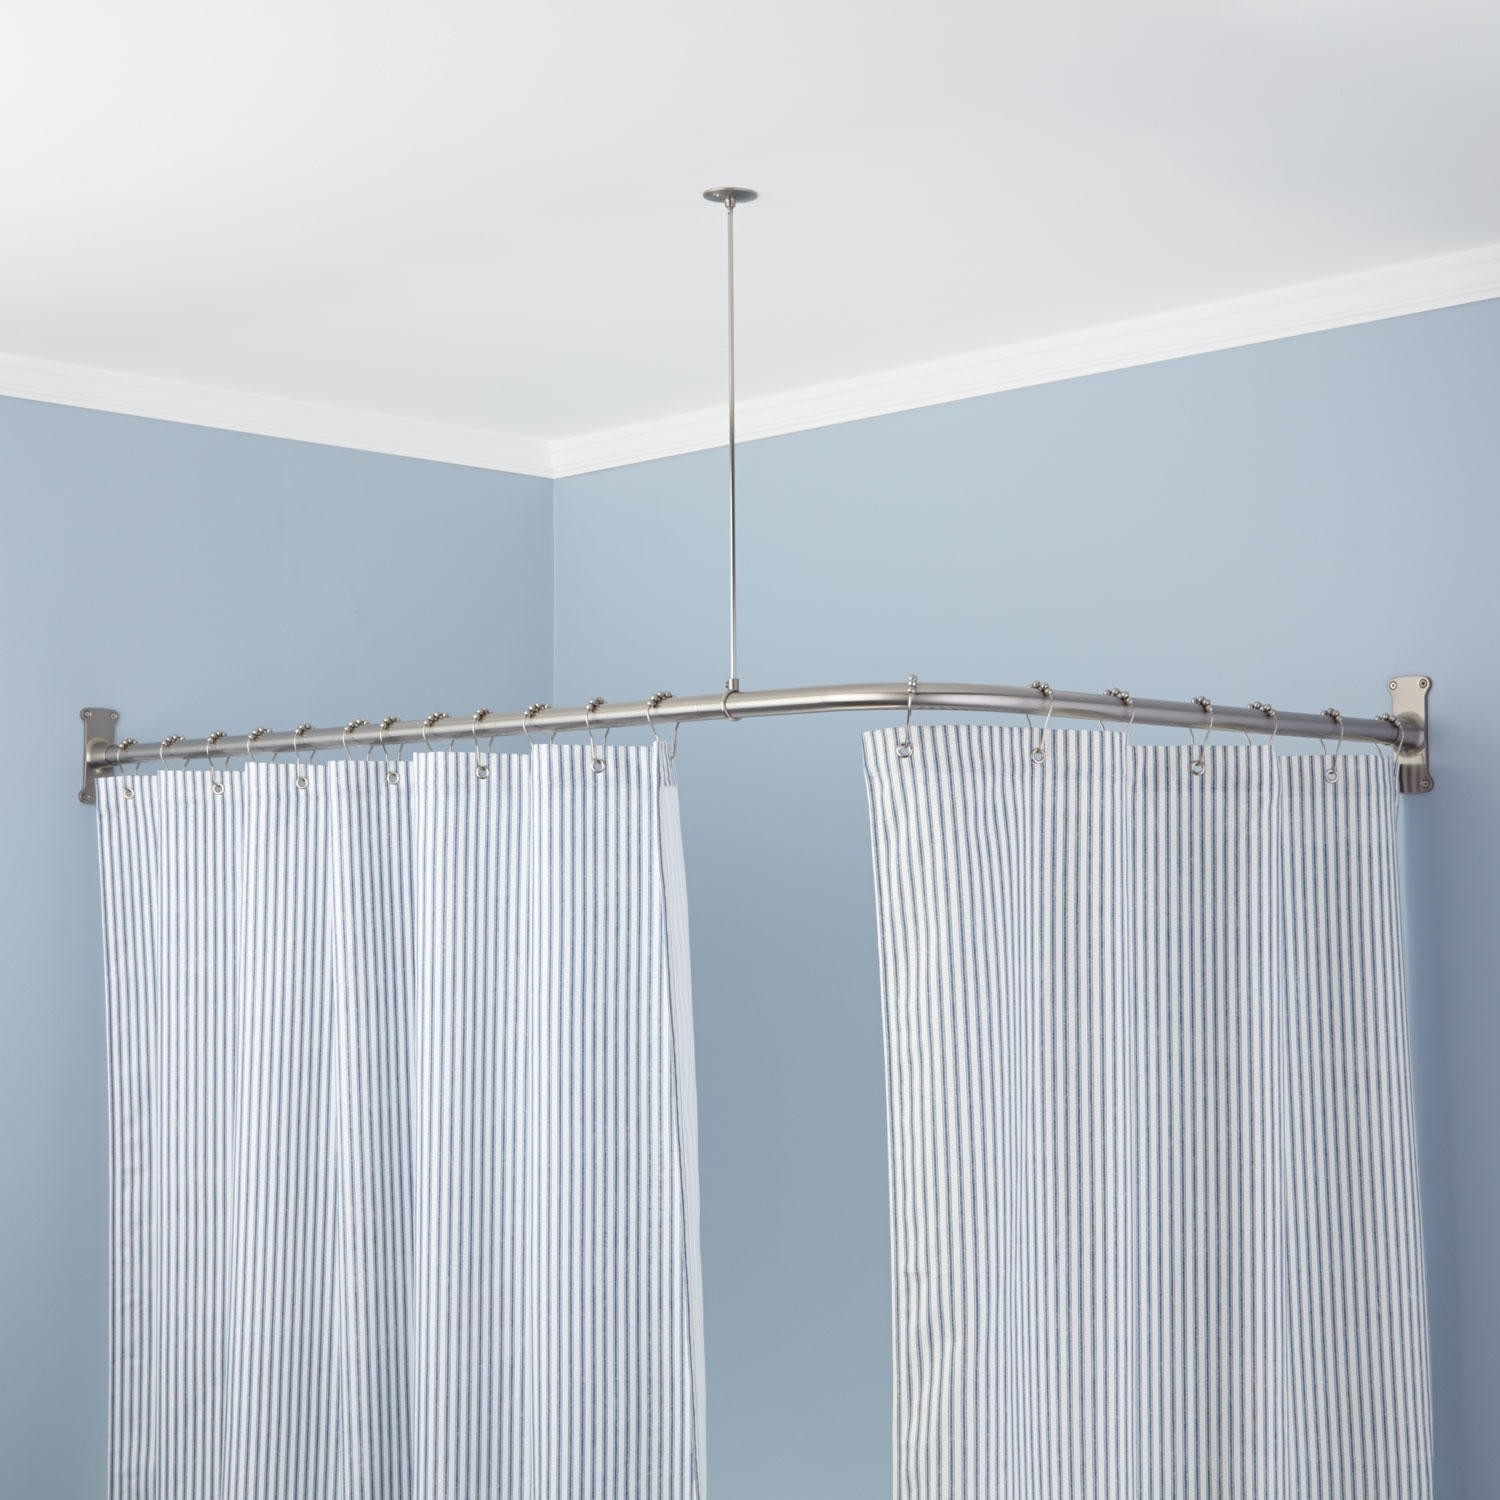 Extra Heavy Corner Shower Curtain Rod In Powder Black For The Regarding L Curtain Rods (Image 7 of 25)